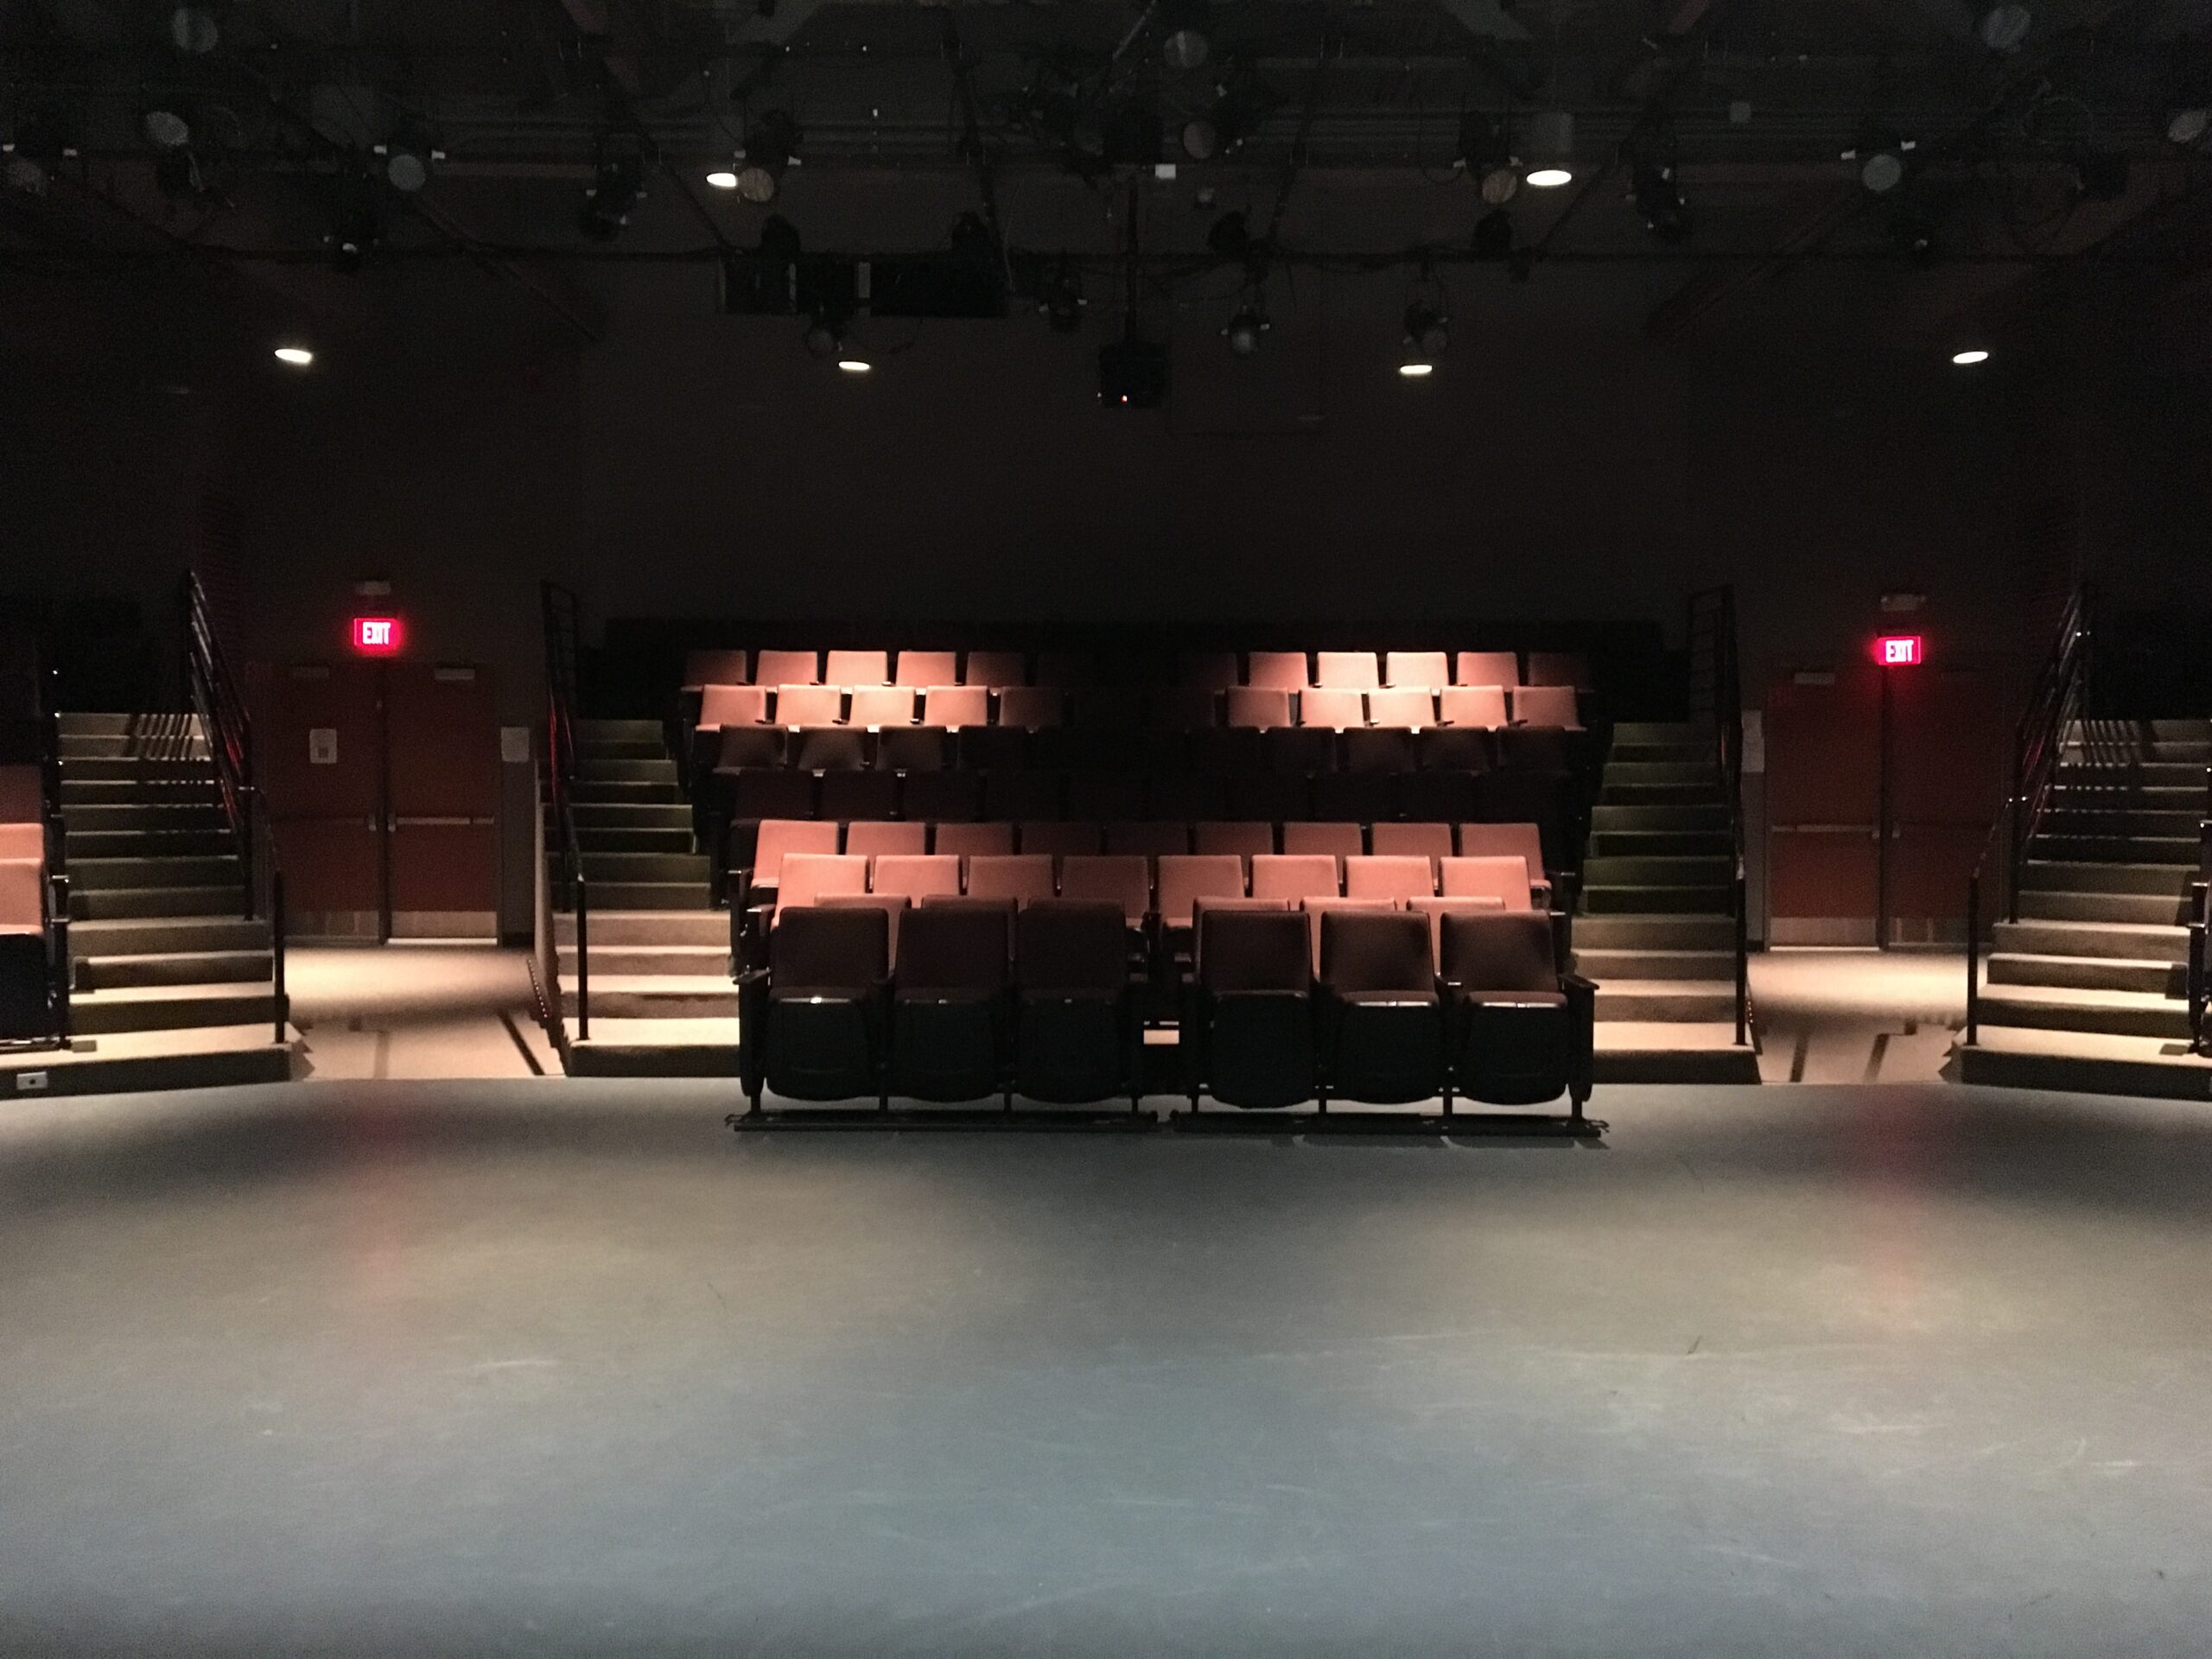 Image taken from the stage of an empty theatre looking out at the seating